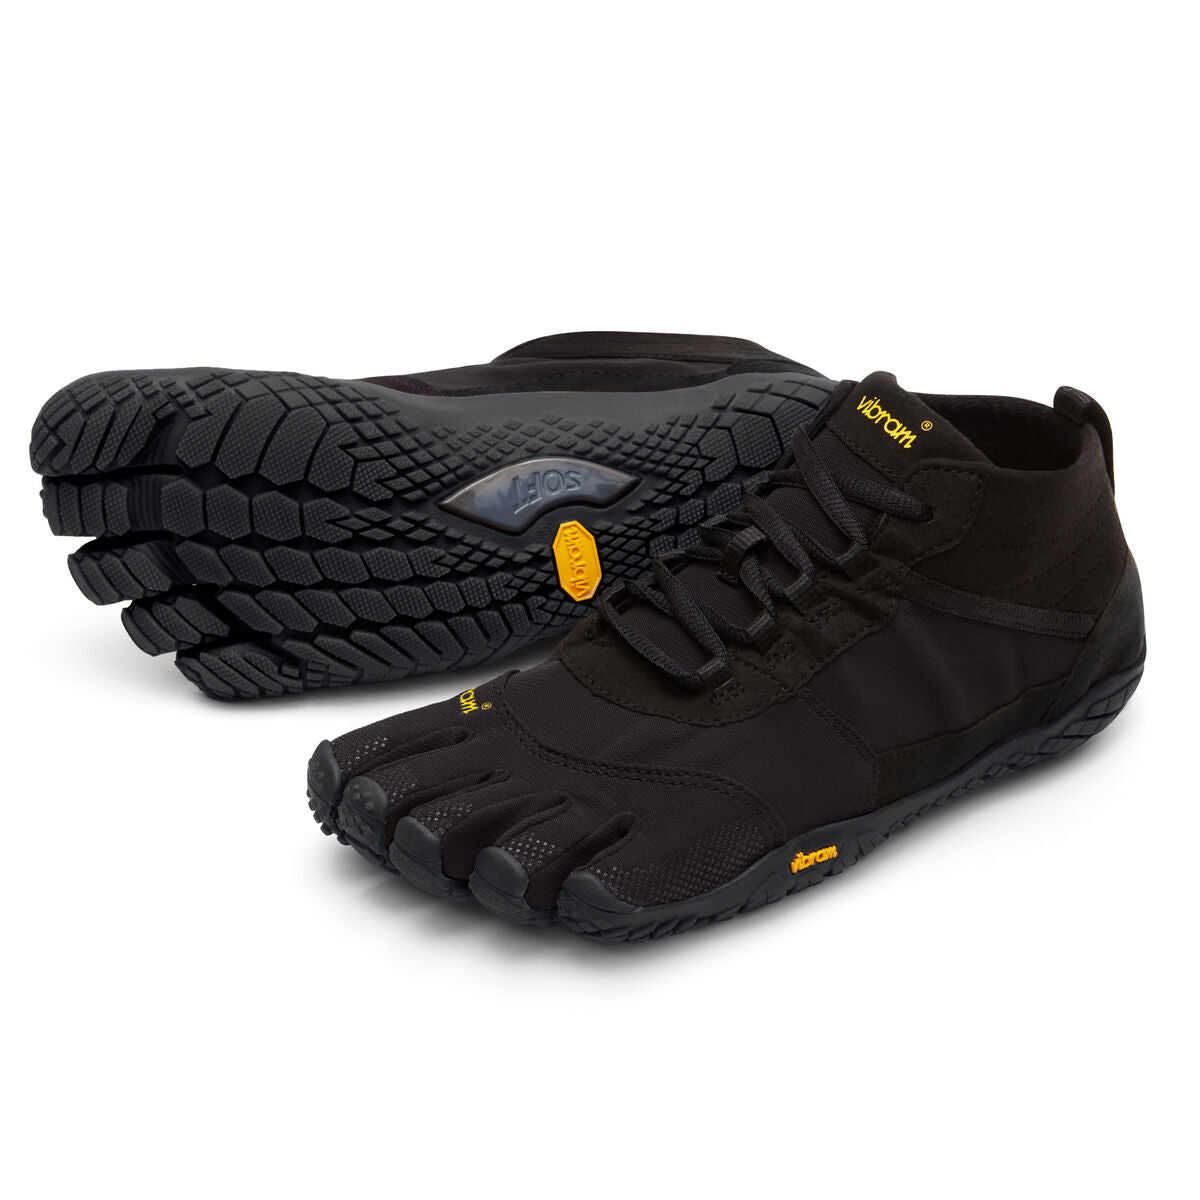 Women's Vibram Five Fingers V-Trek Hiking Shoe in Black/Black from the front